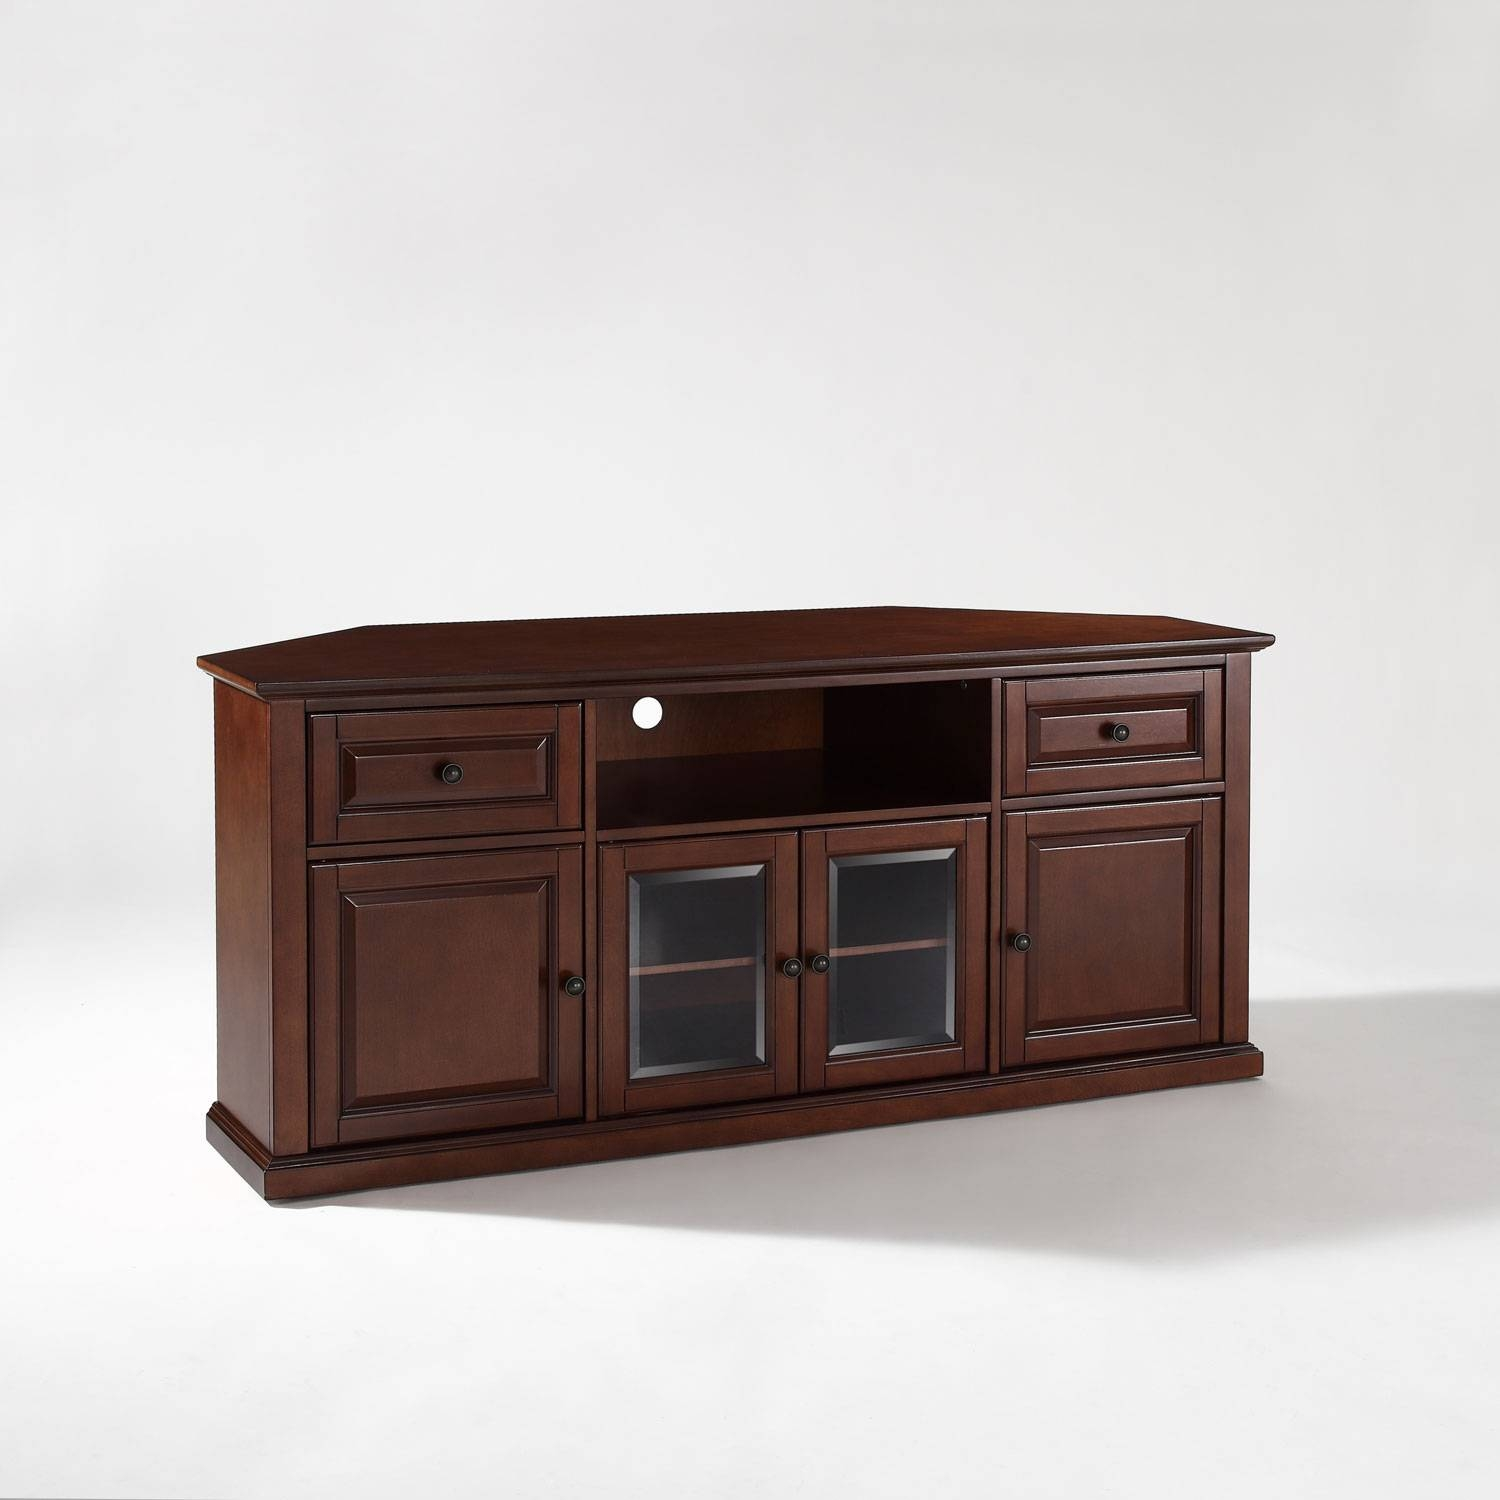 Tv Stands & Cabinets On Sale | Bellacor throughout Tall Tv Cabinets Corner Unit (Image 12 of 15)